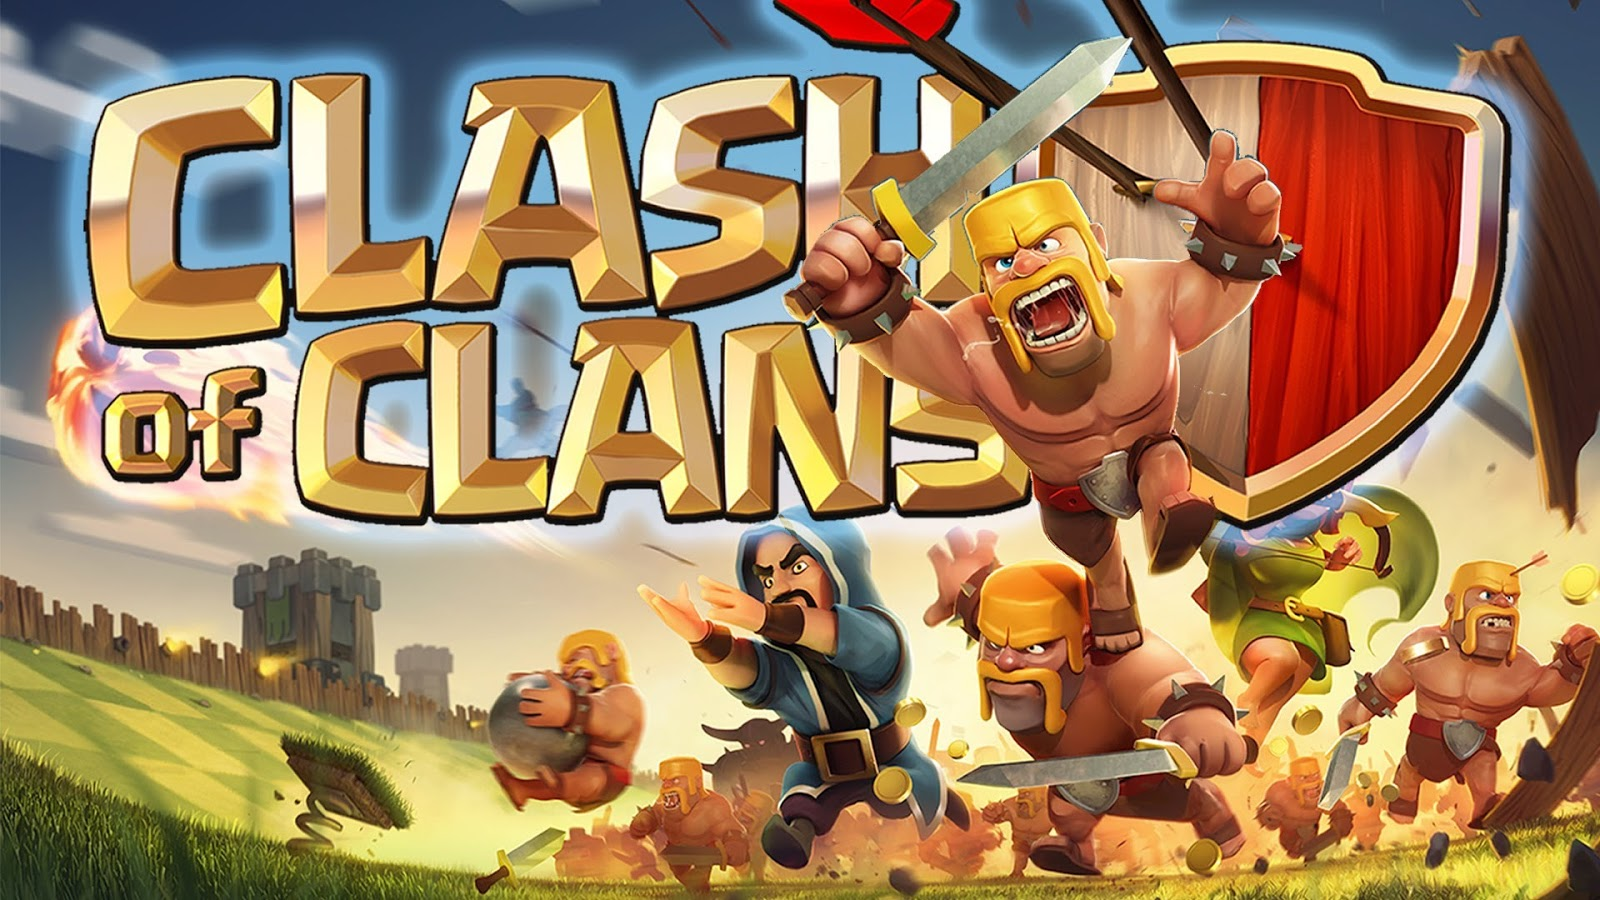 Wallpaper 3d Buat Android Gambar Animasi Lucu Clash Of Clans Terbaru Display